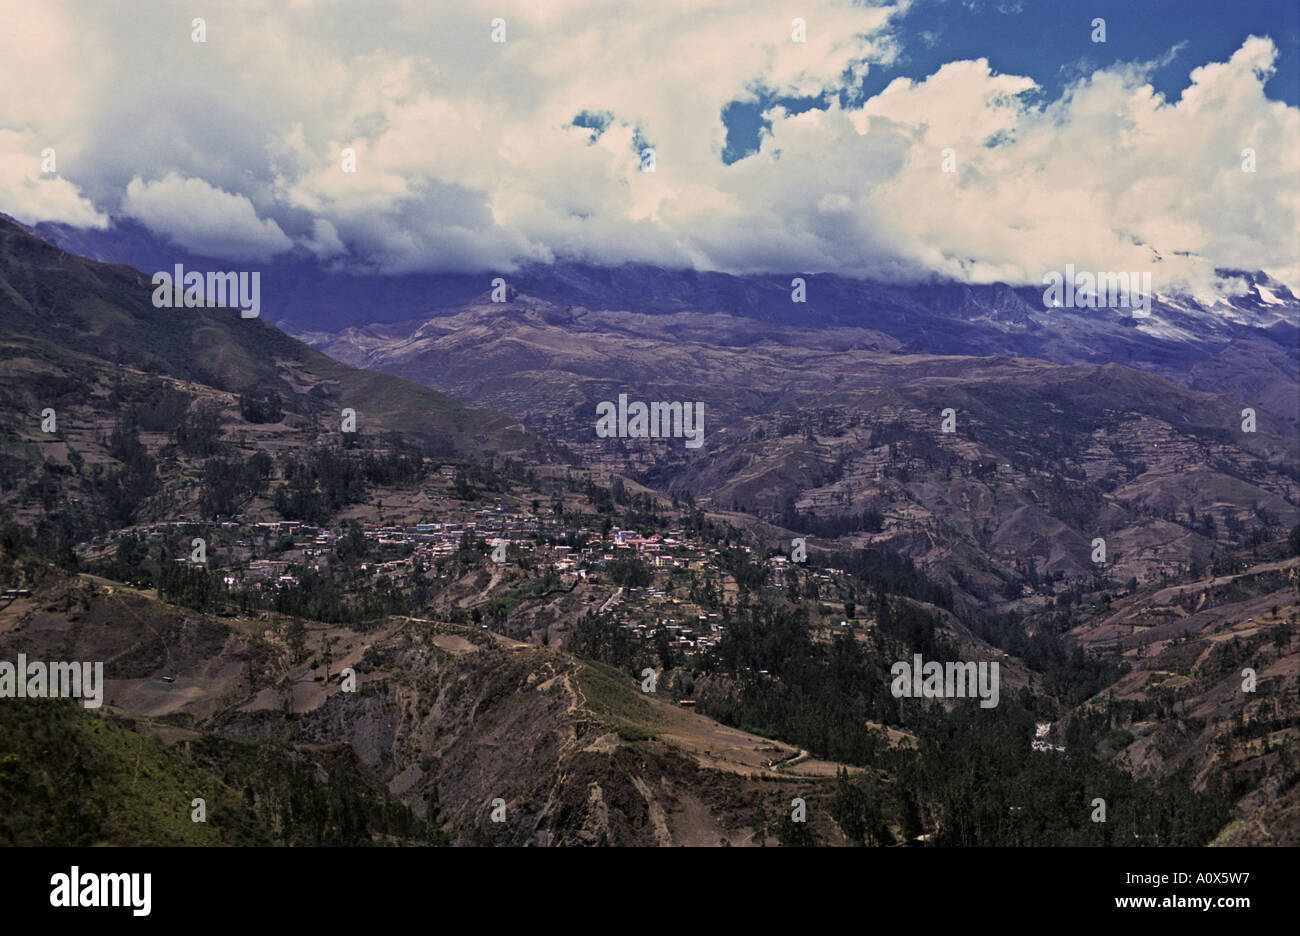 BOLIVIA View of the colonial town of Sorata situated on the foothills of Mount Illampu - Stock Image